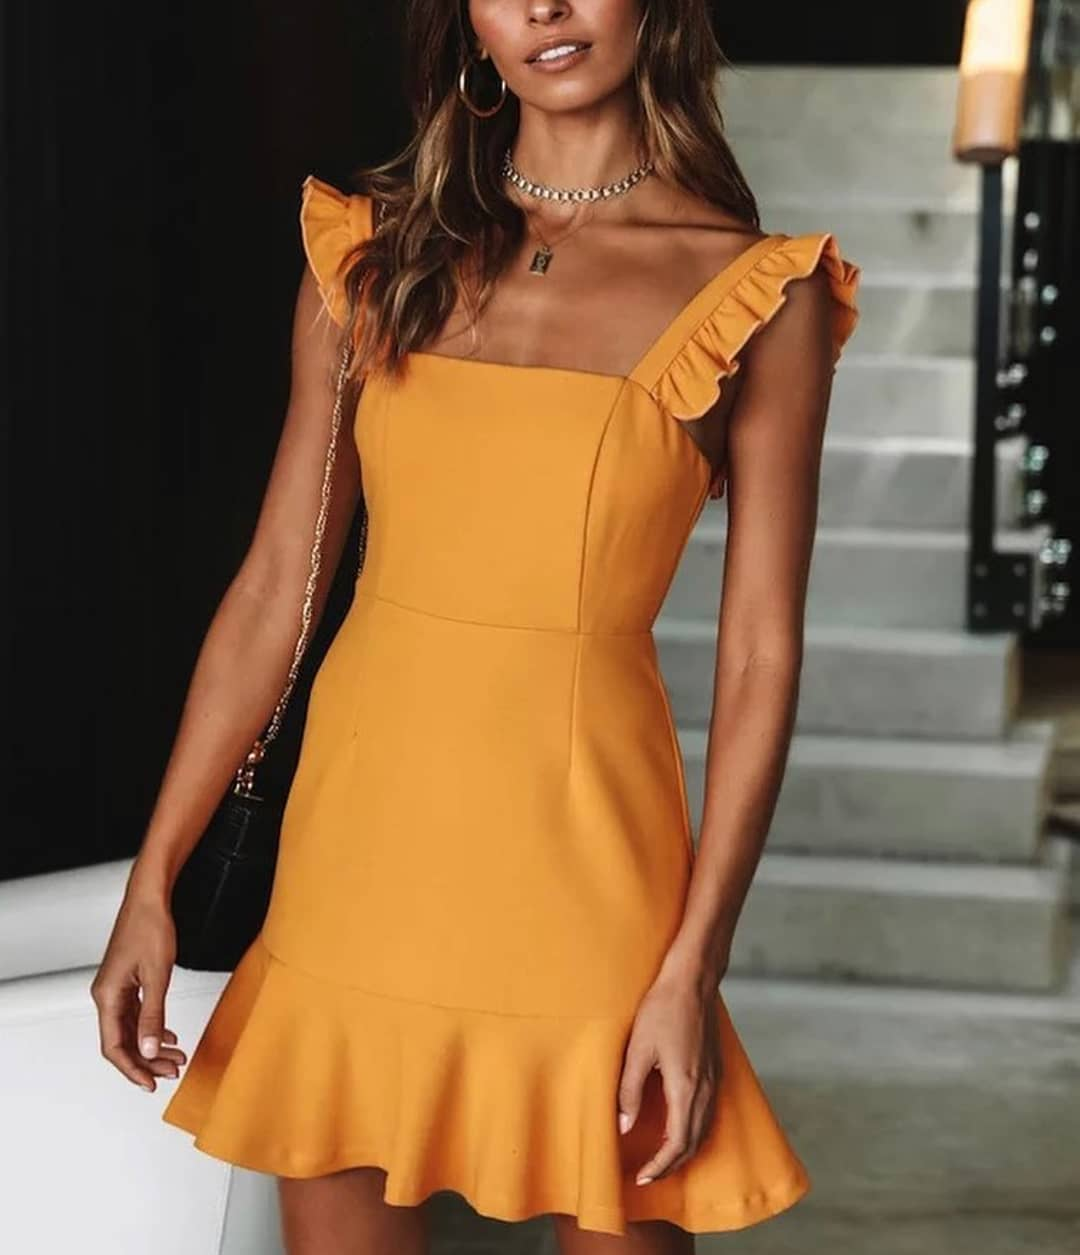 Orange Dress With Ruffled Straps For Summer Cocktail Parties 2020